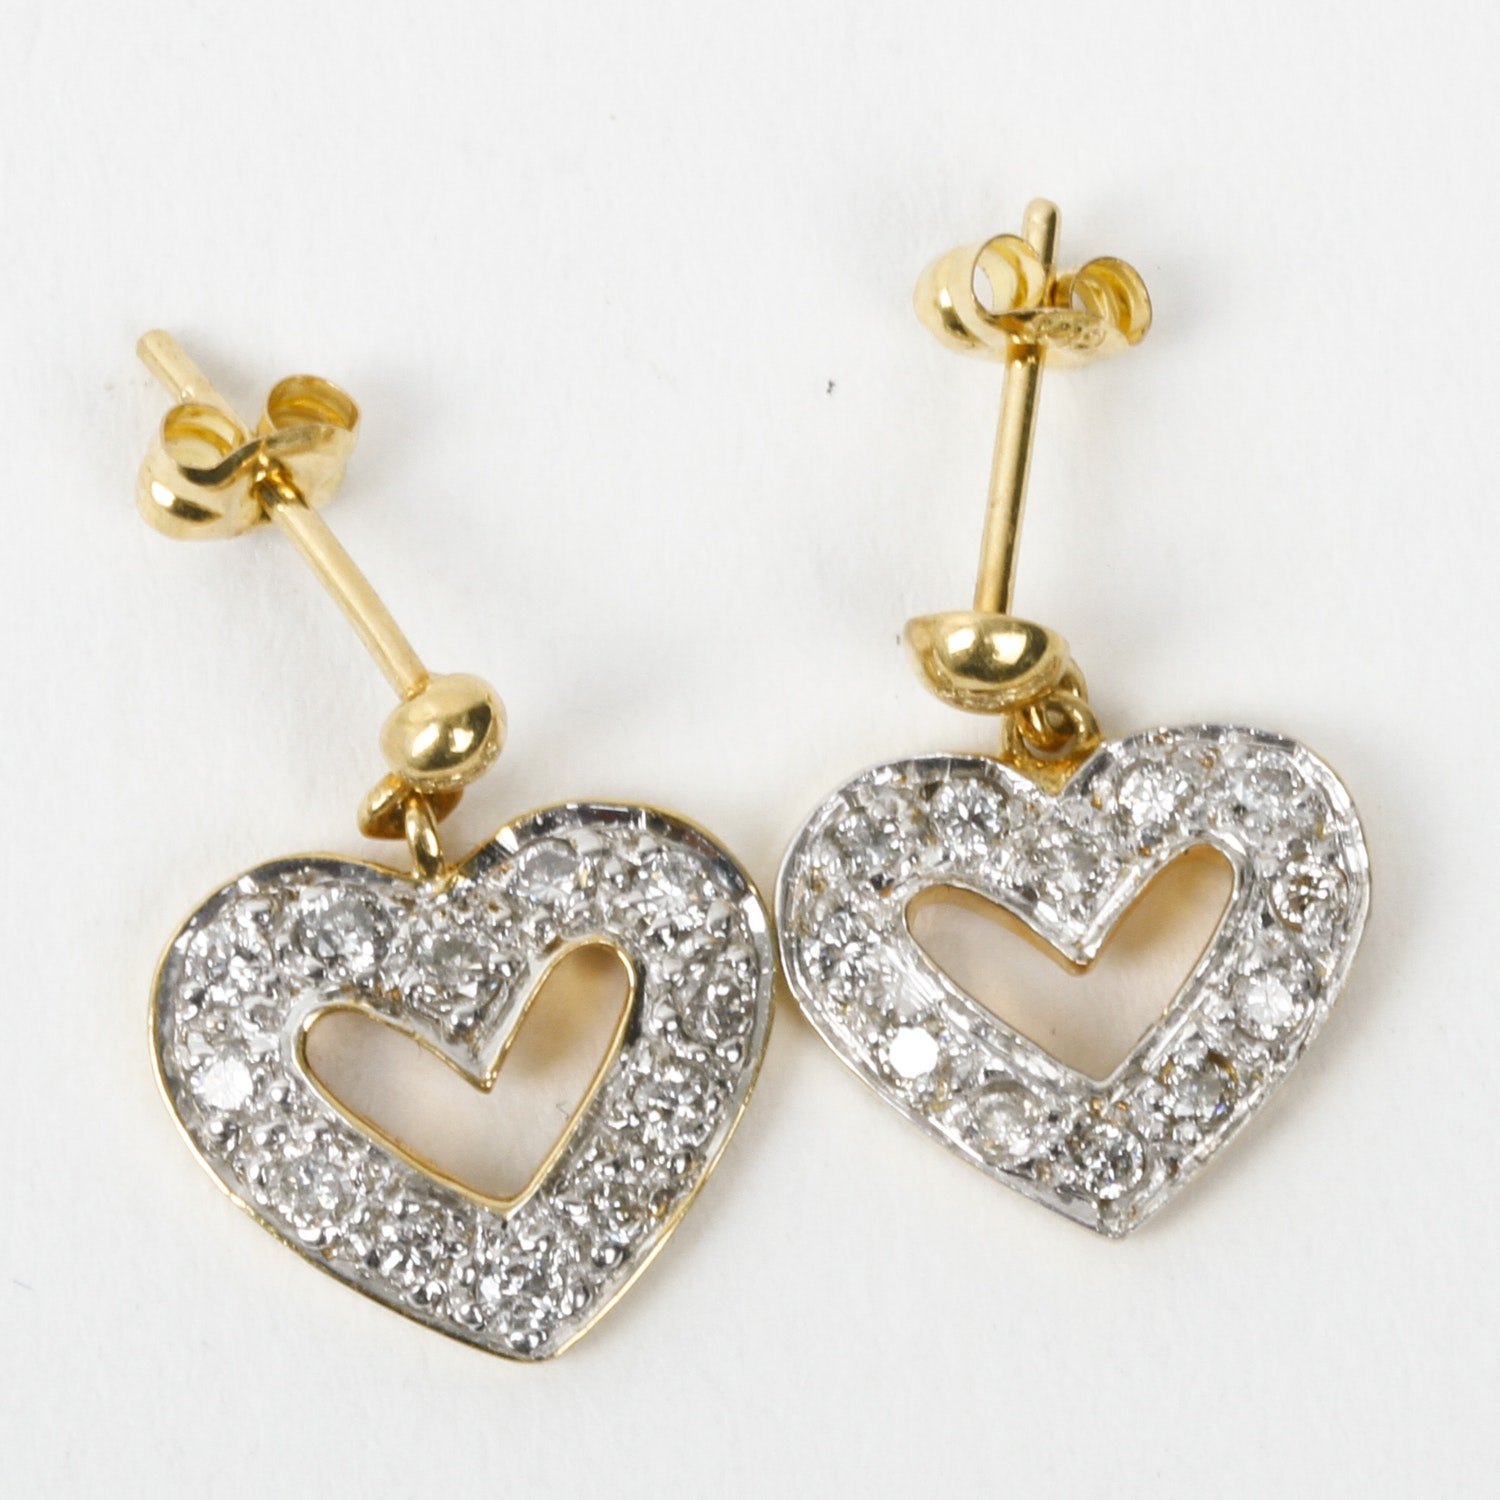 18K Yellow Gold and Pavé Diamond Heart Earrings